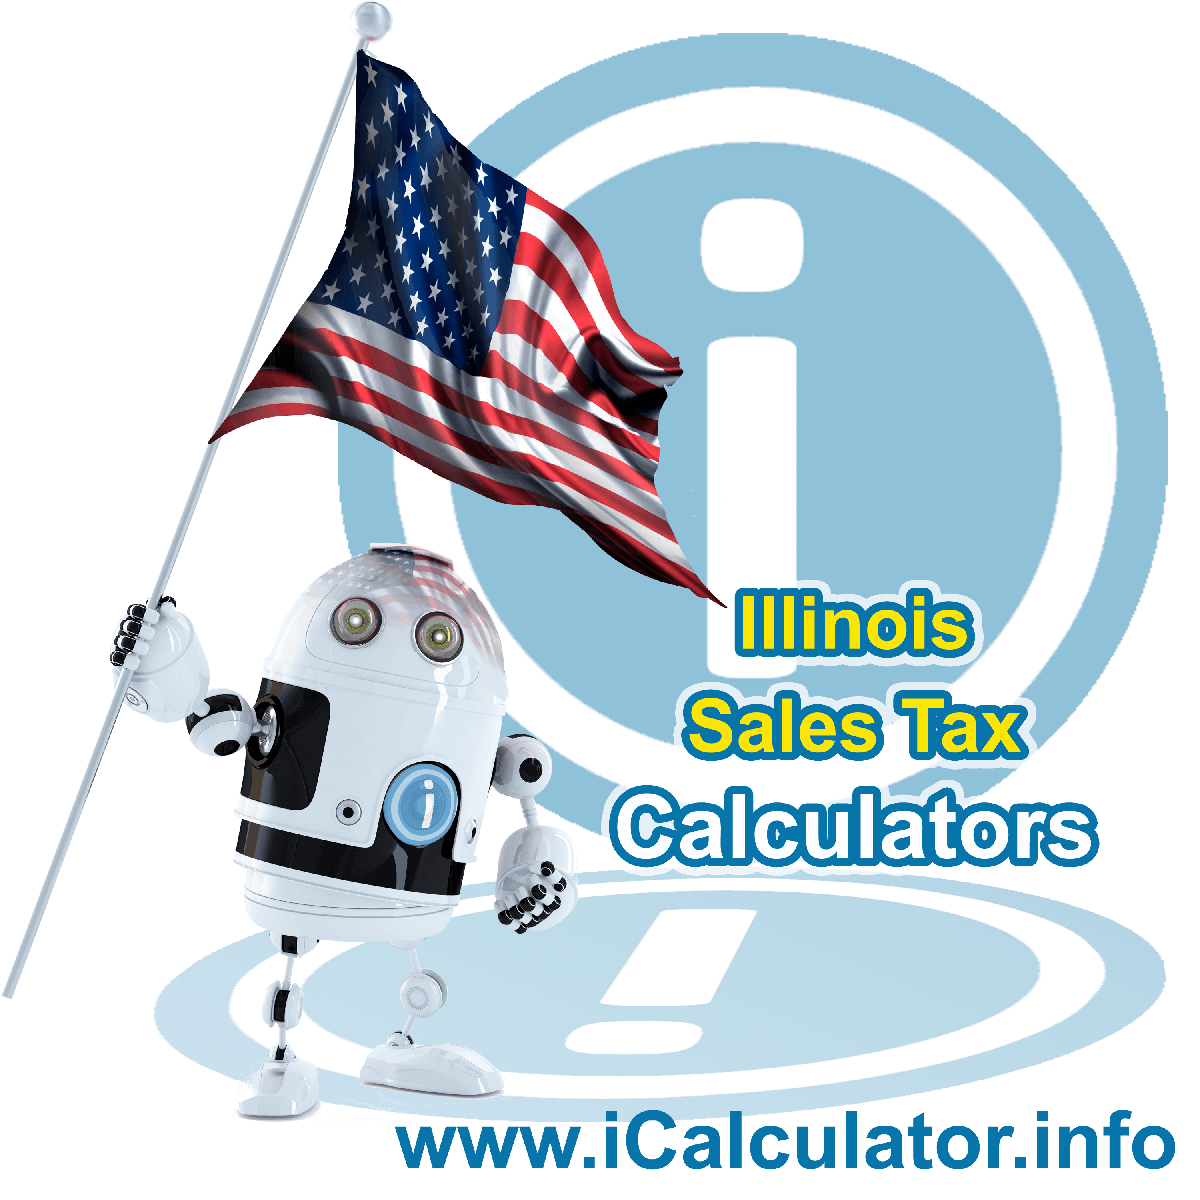 Franklin Park Sales Rates: This image illustrates a calculator robot calculating Franklin Park sales tax manually using the Franklin Park Sales Tax Formula. You can use this information to calculate Franklin Park Sales Tax manually or use the Franklin Park Sales Tax Calculator to calculate sales tax online.